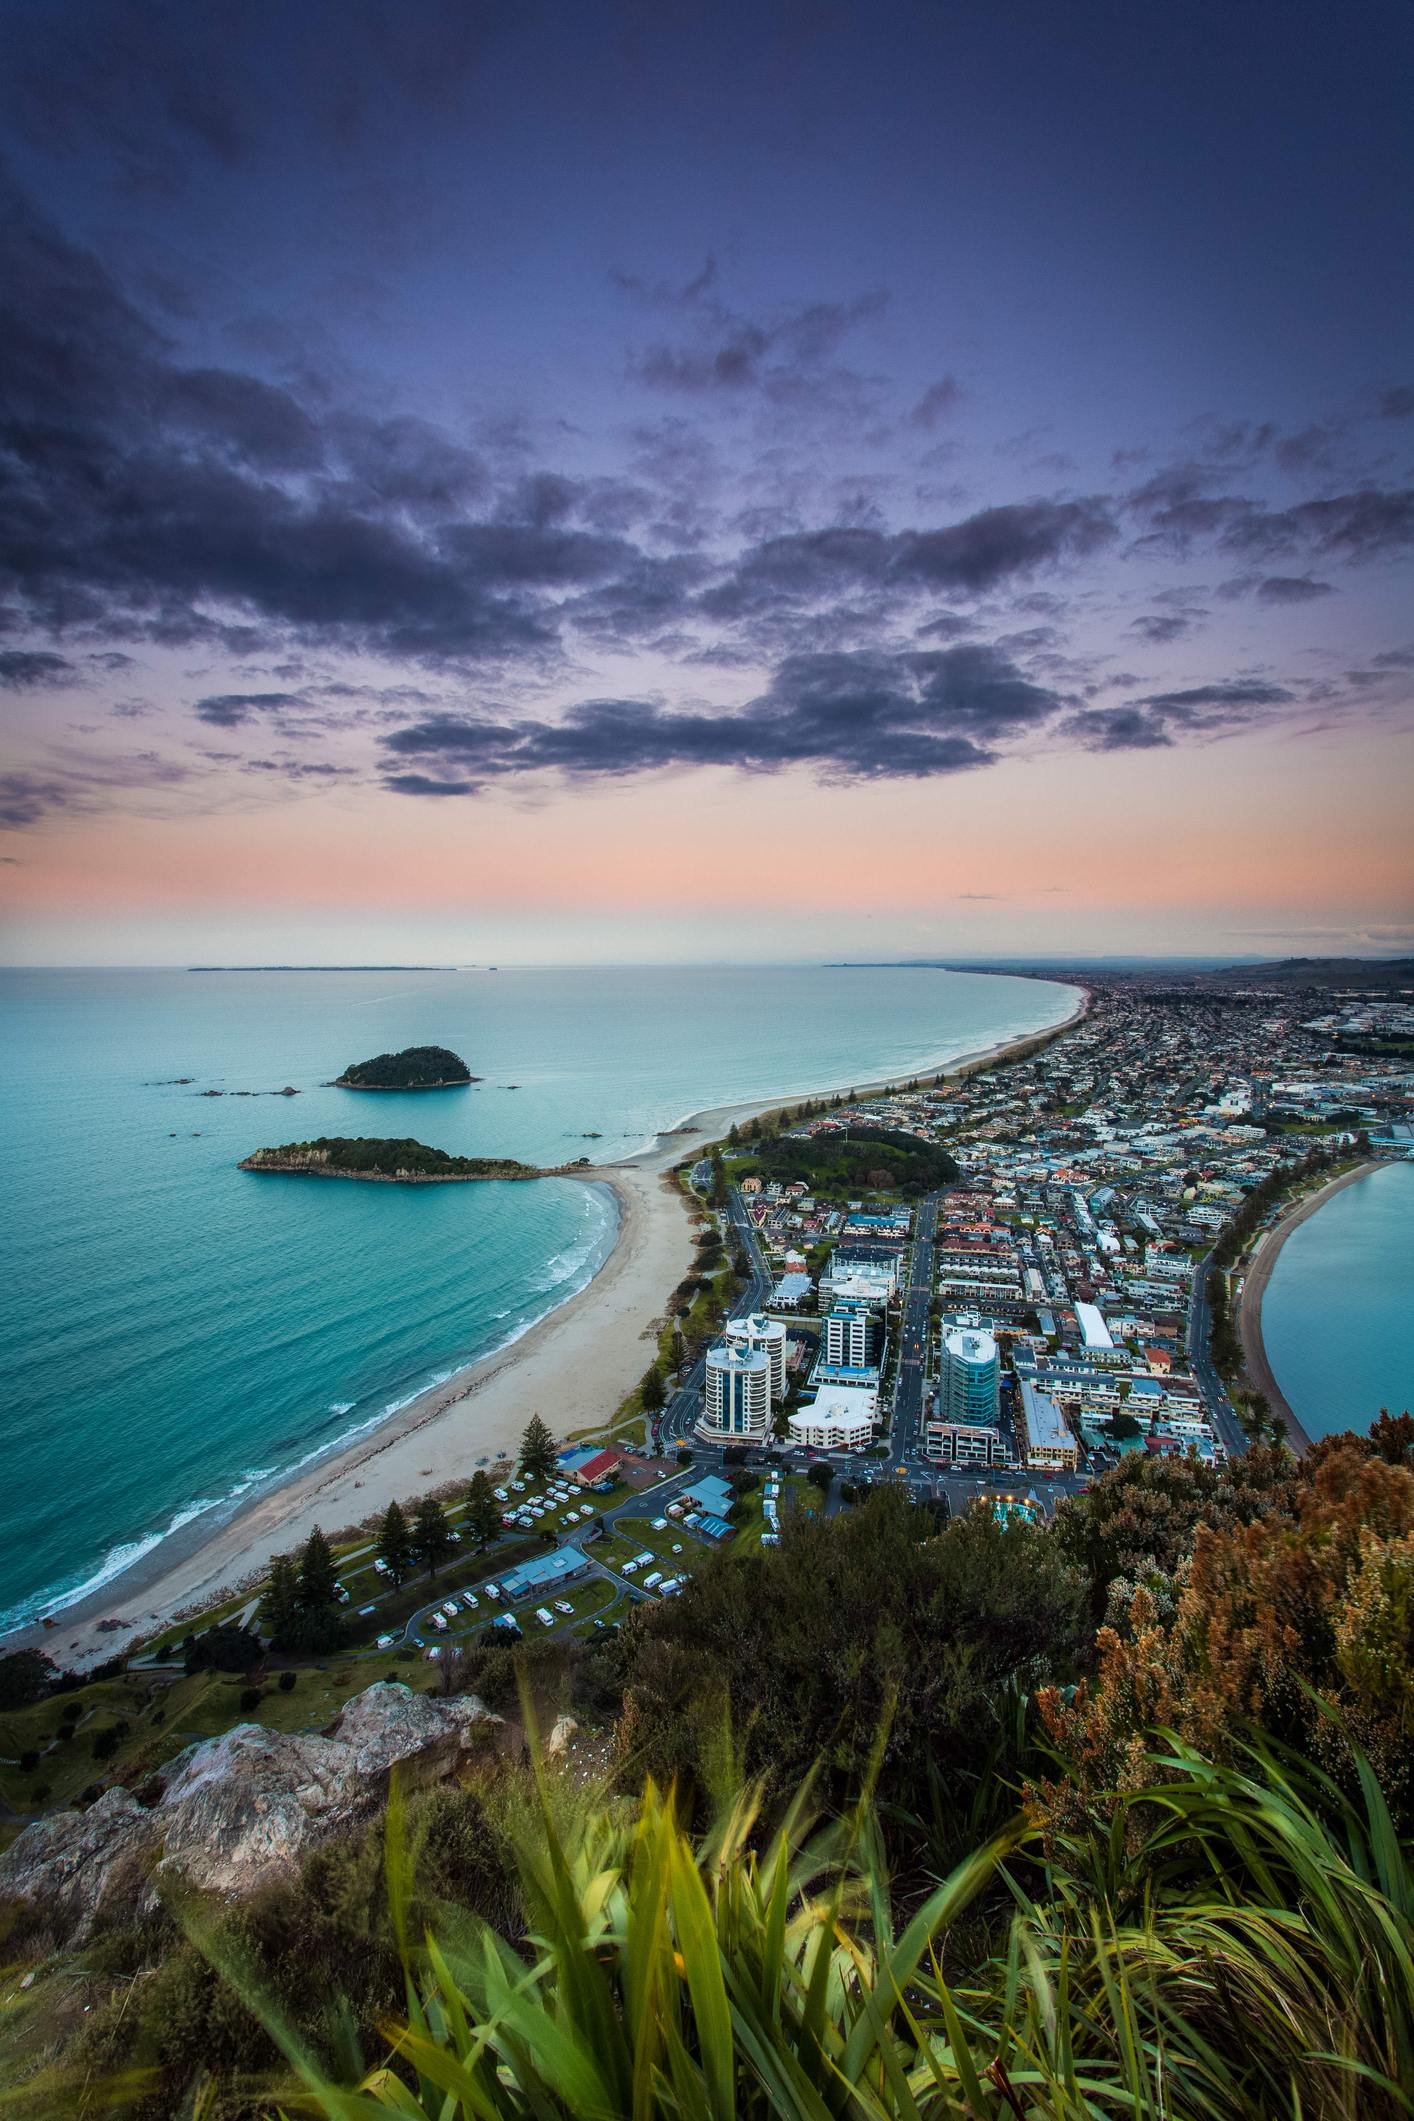 Mount Maunganui Tauranga New Zealand at Sunset top of the mountain